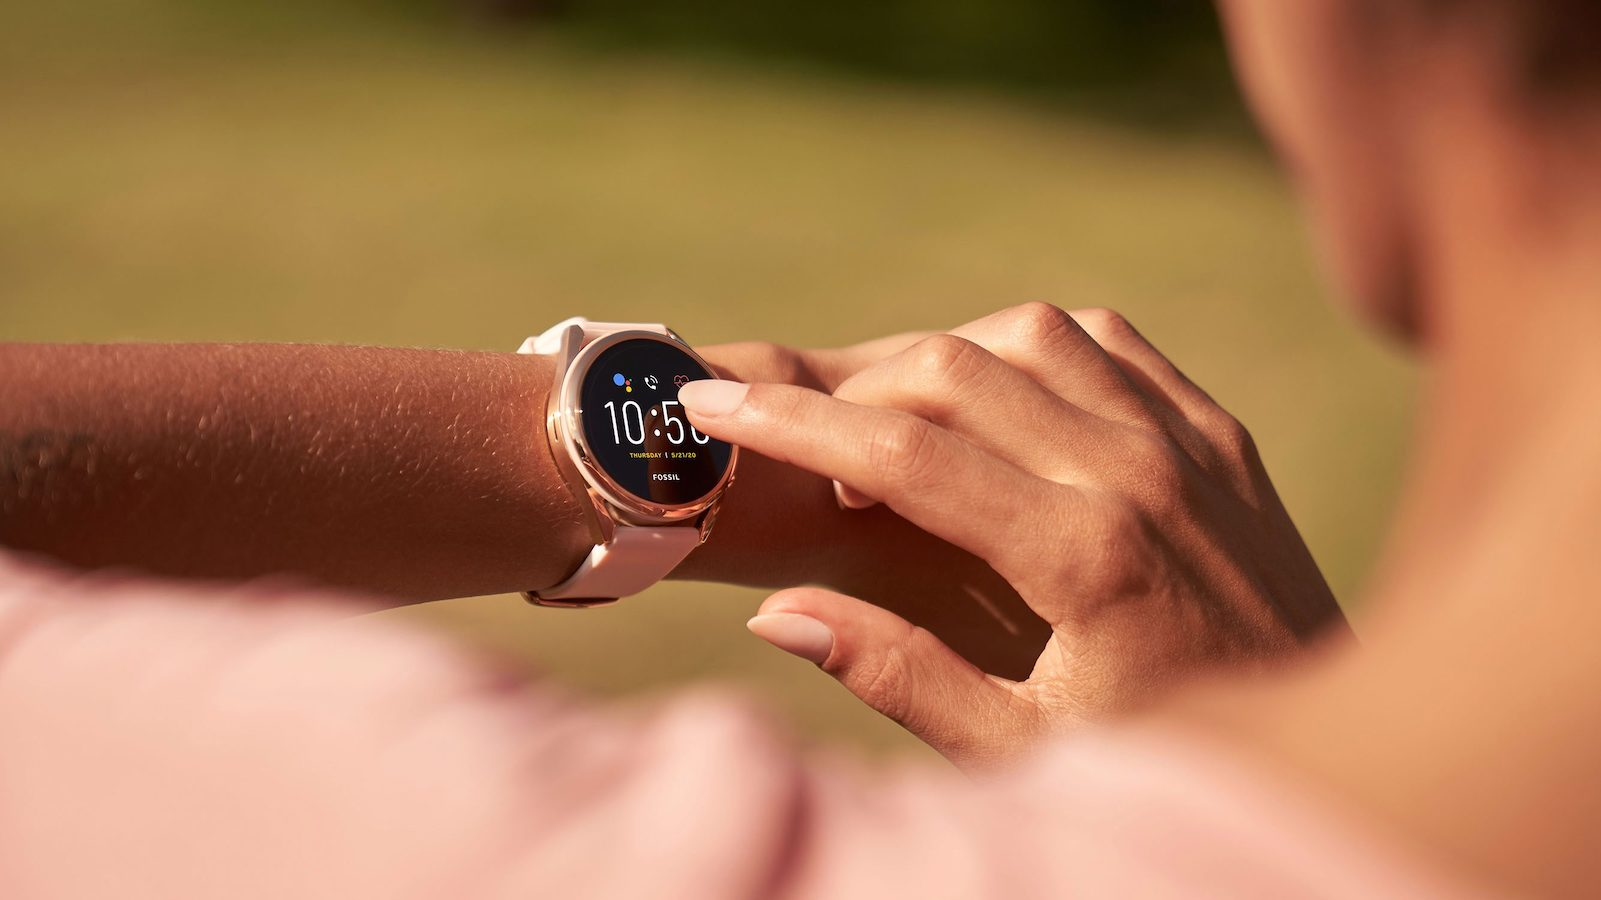 Fossil Gen 5 LTE smartwatch boasts the Qualcomm Snapdragon 3100 processor